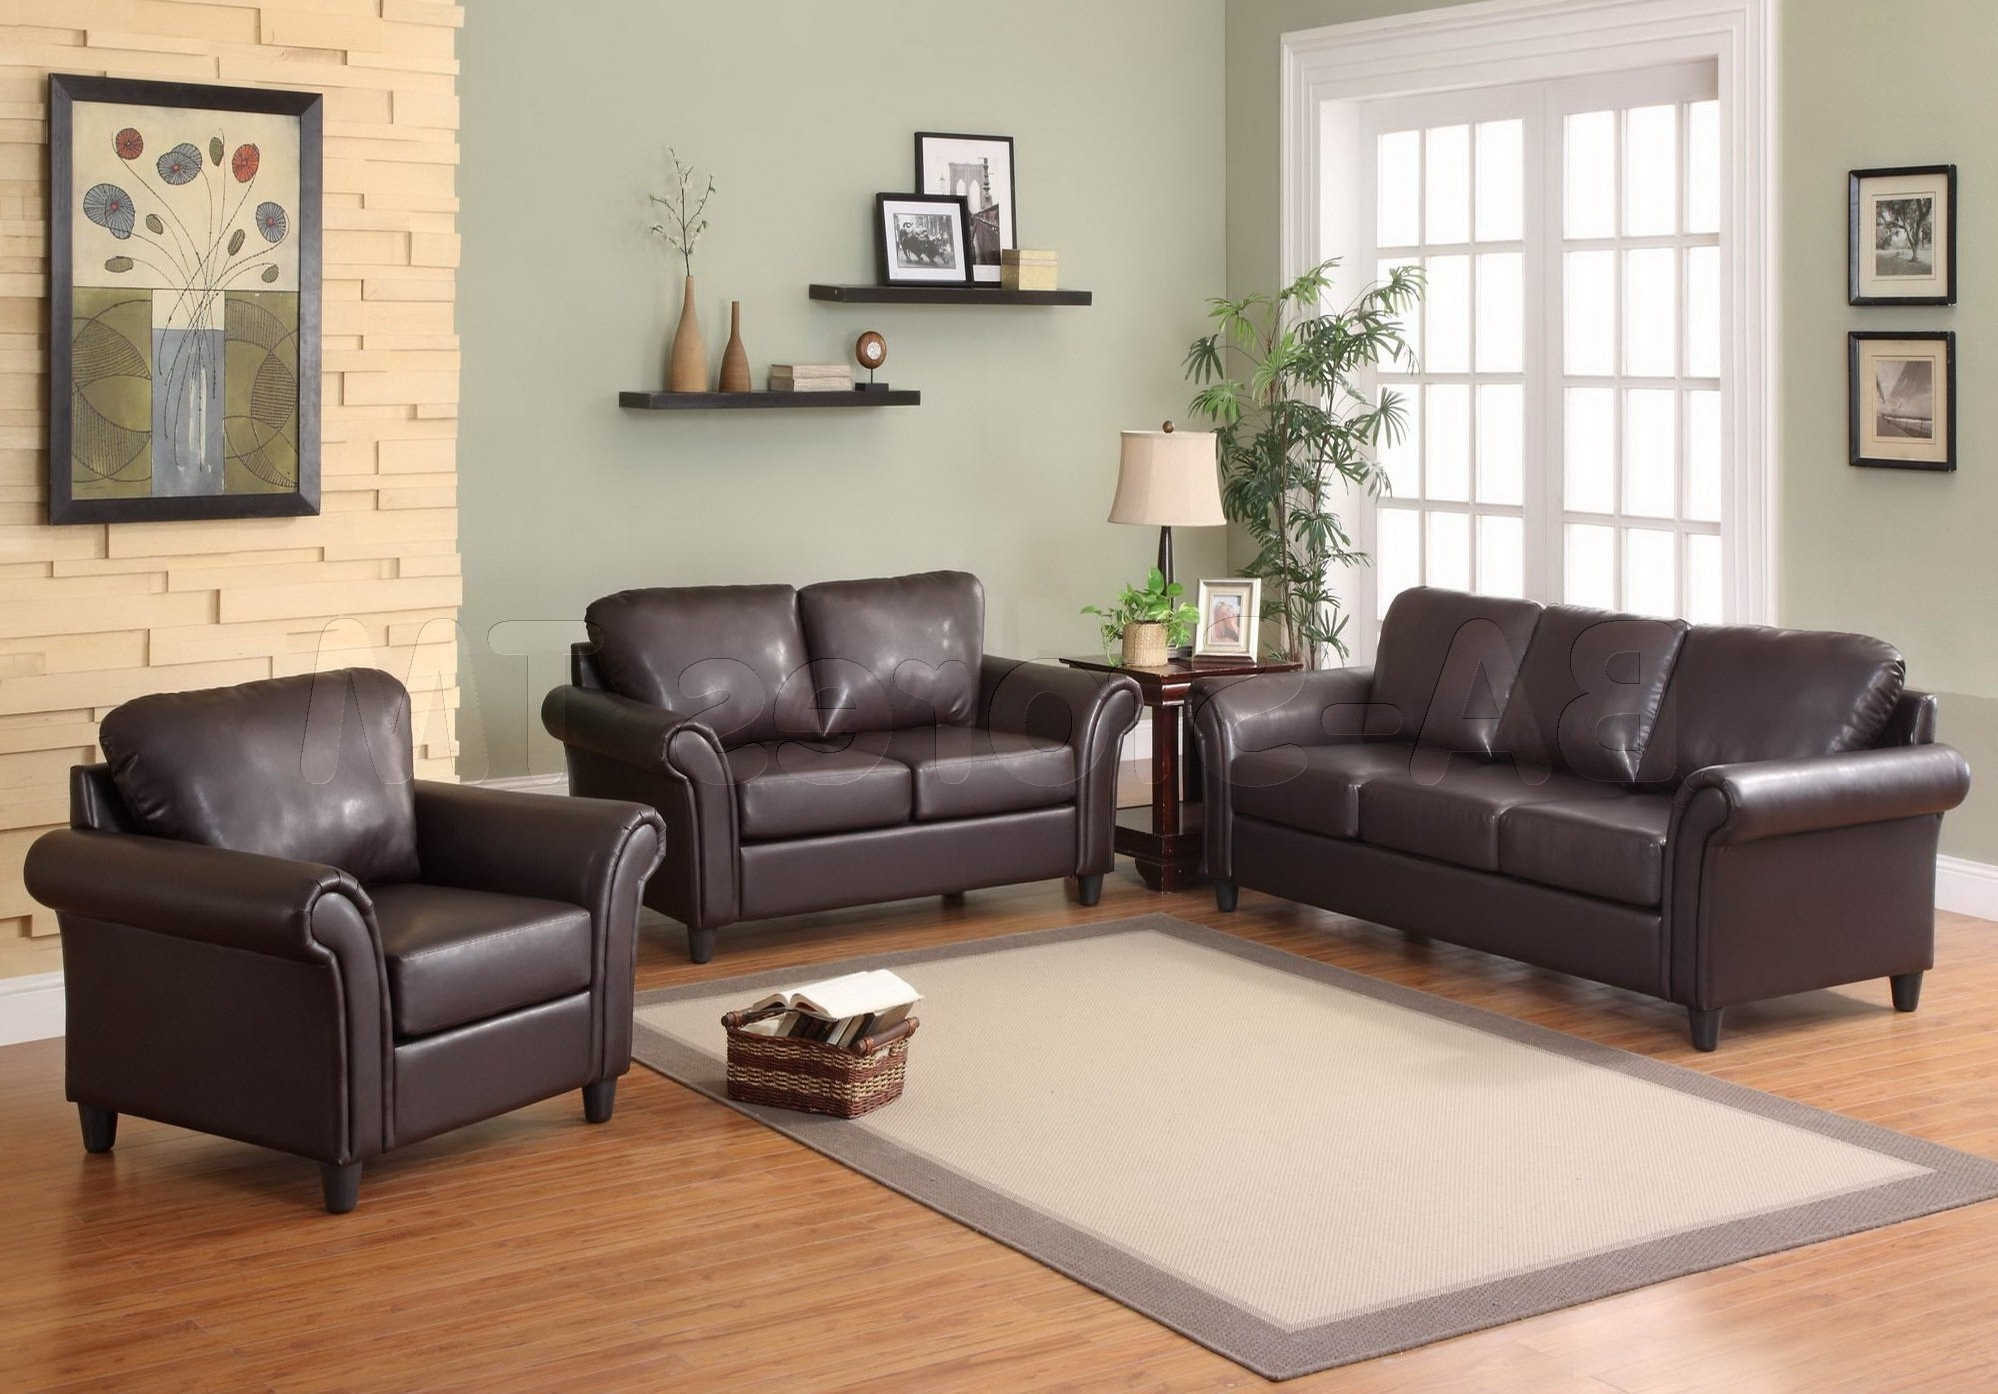 Brown Furniture Wall Accents In Fashionable Accent Wall With Brown Furniture Presenting Black Leather Sofa And (Gallery 5 of 15)